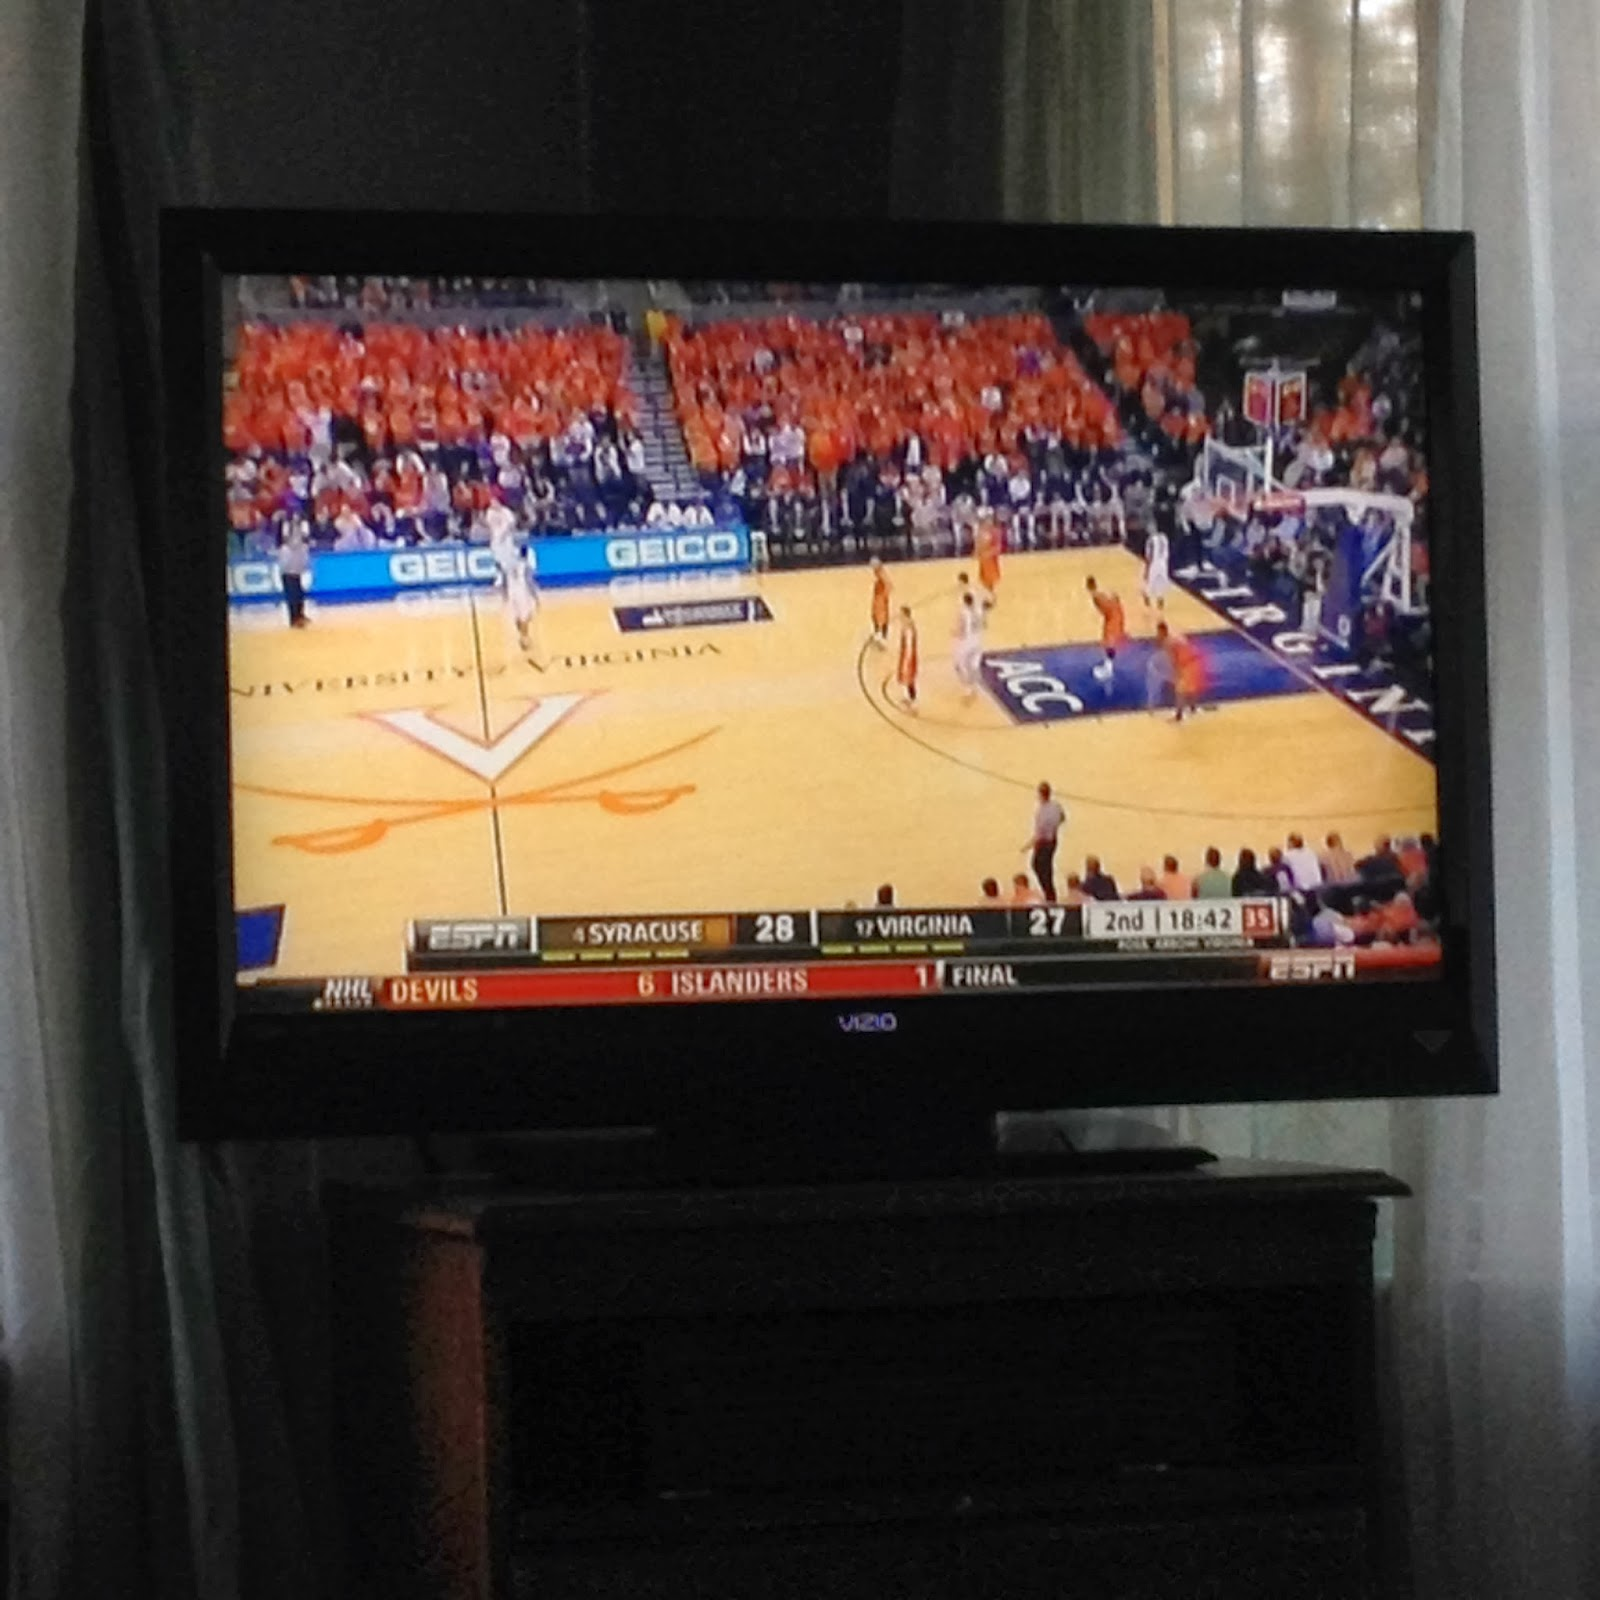 UVA vs Cuse ACC Champ game